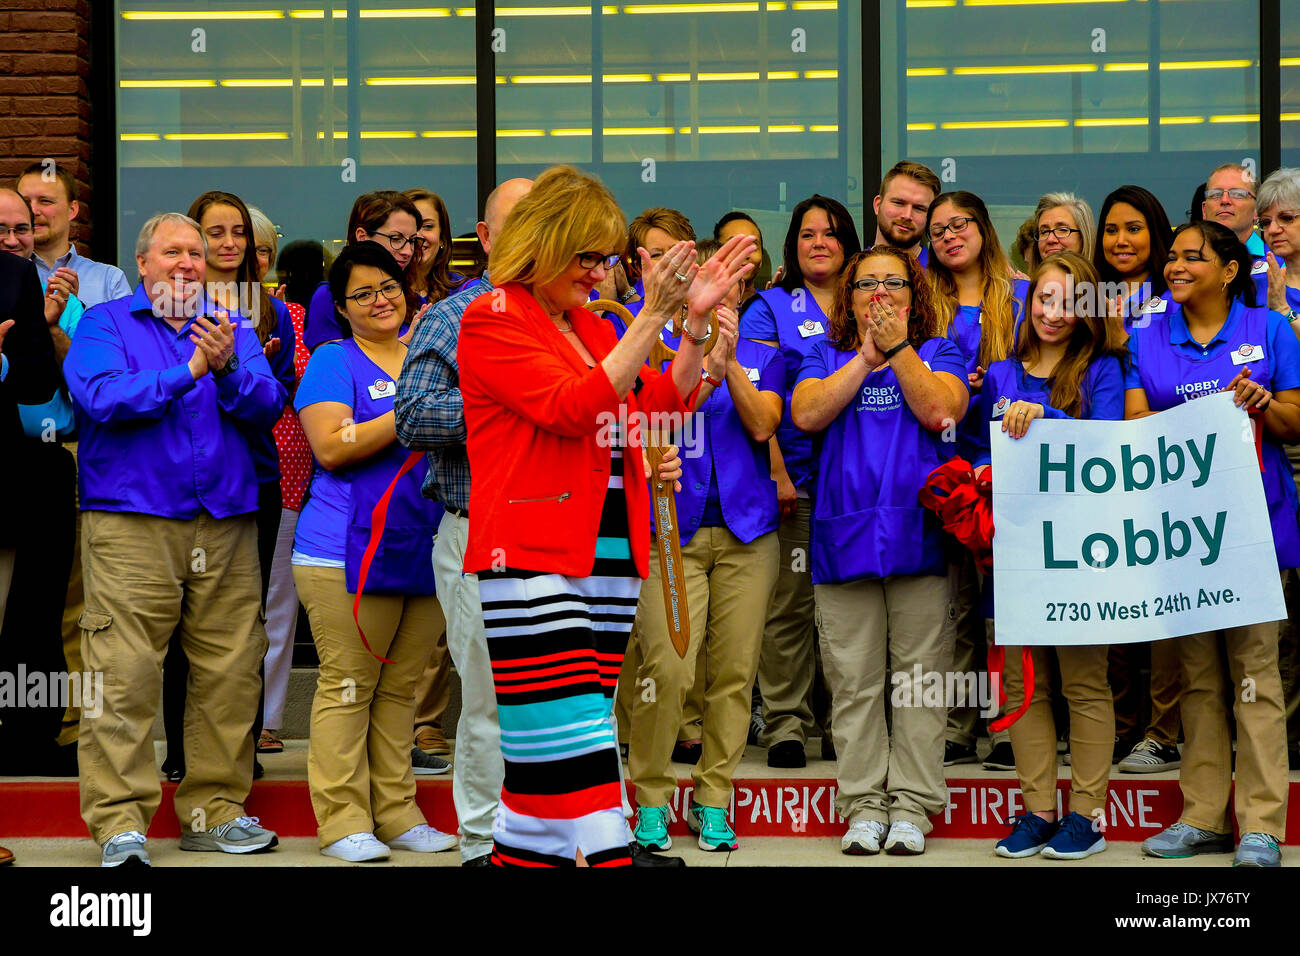 Debora Kinsey a corporate representive of Hobby Lobby  claps her hands as the ribbon is cut to signify that the newest store is now open today in Emporia, Kansas August 13. 2017. - Stock Image